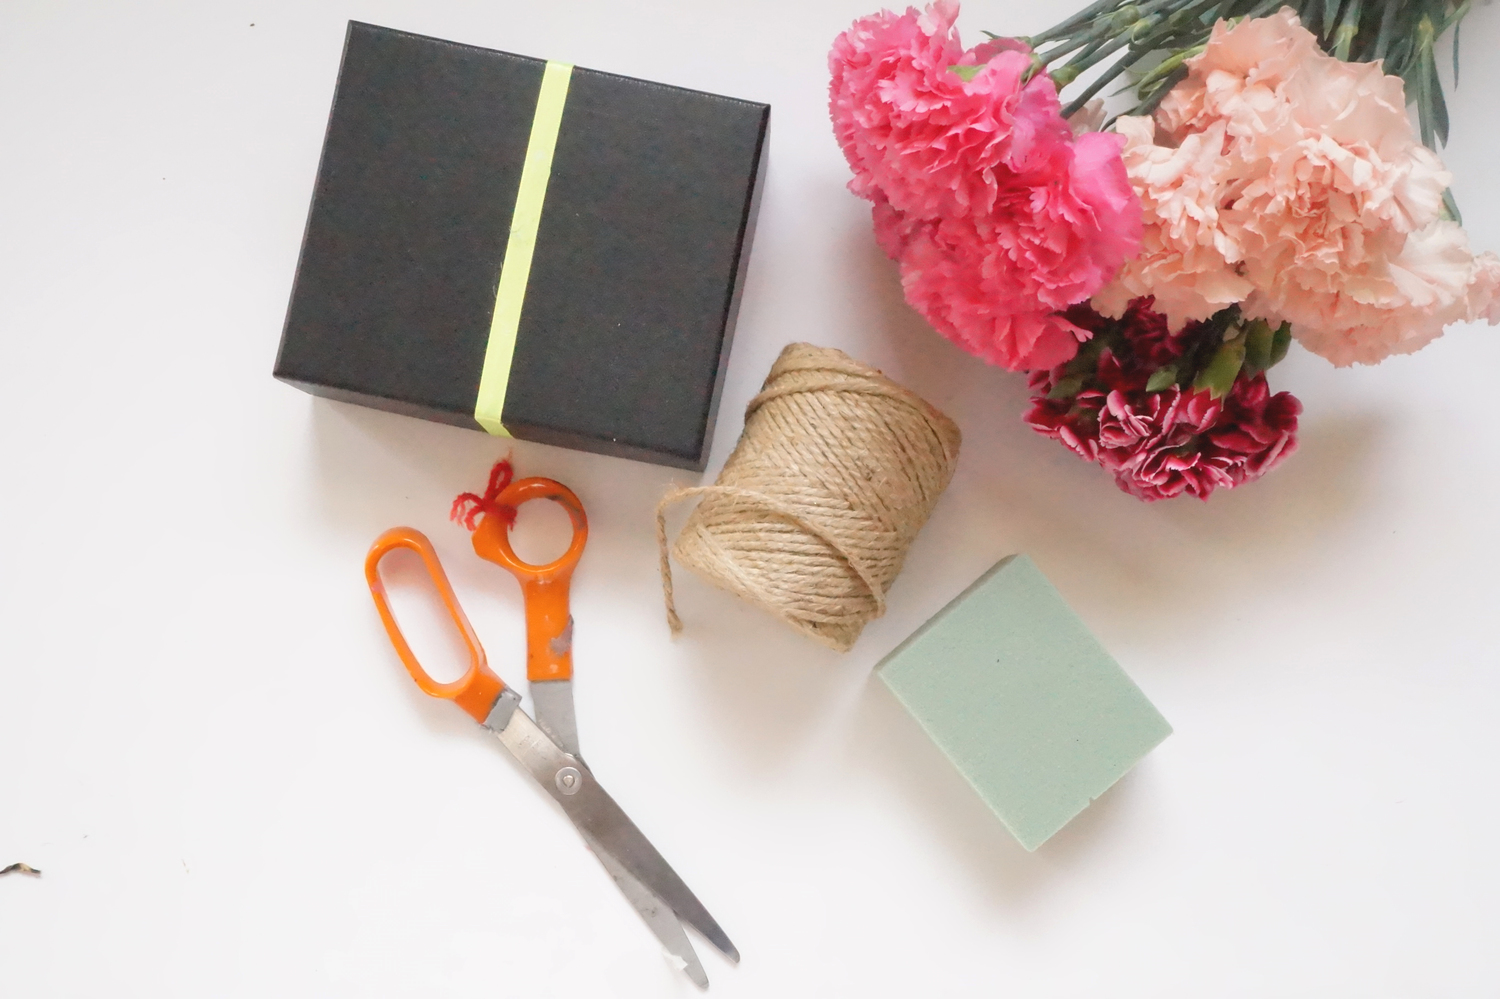 Andrea Fenise Memphis Fashion Blogger shares a DIY Floral Box for Valentine's Day